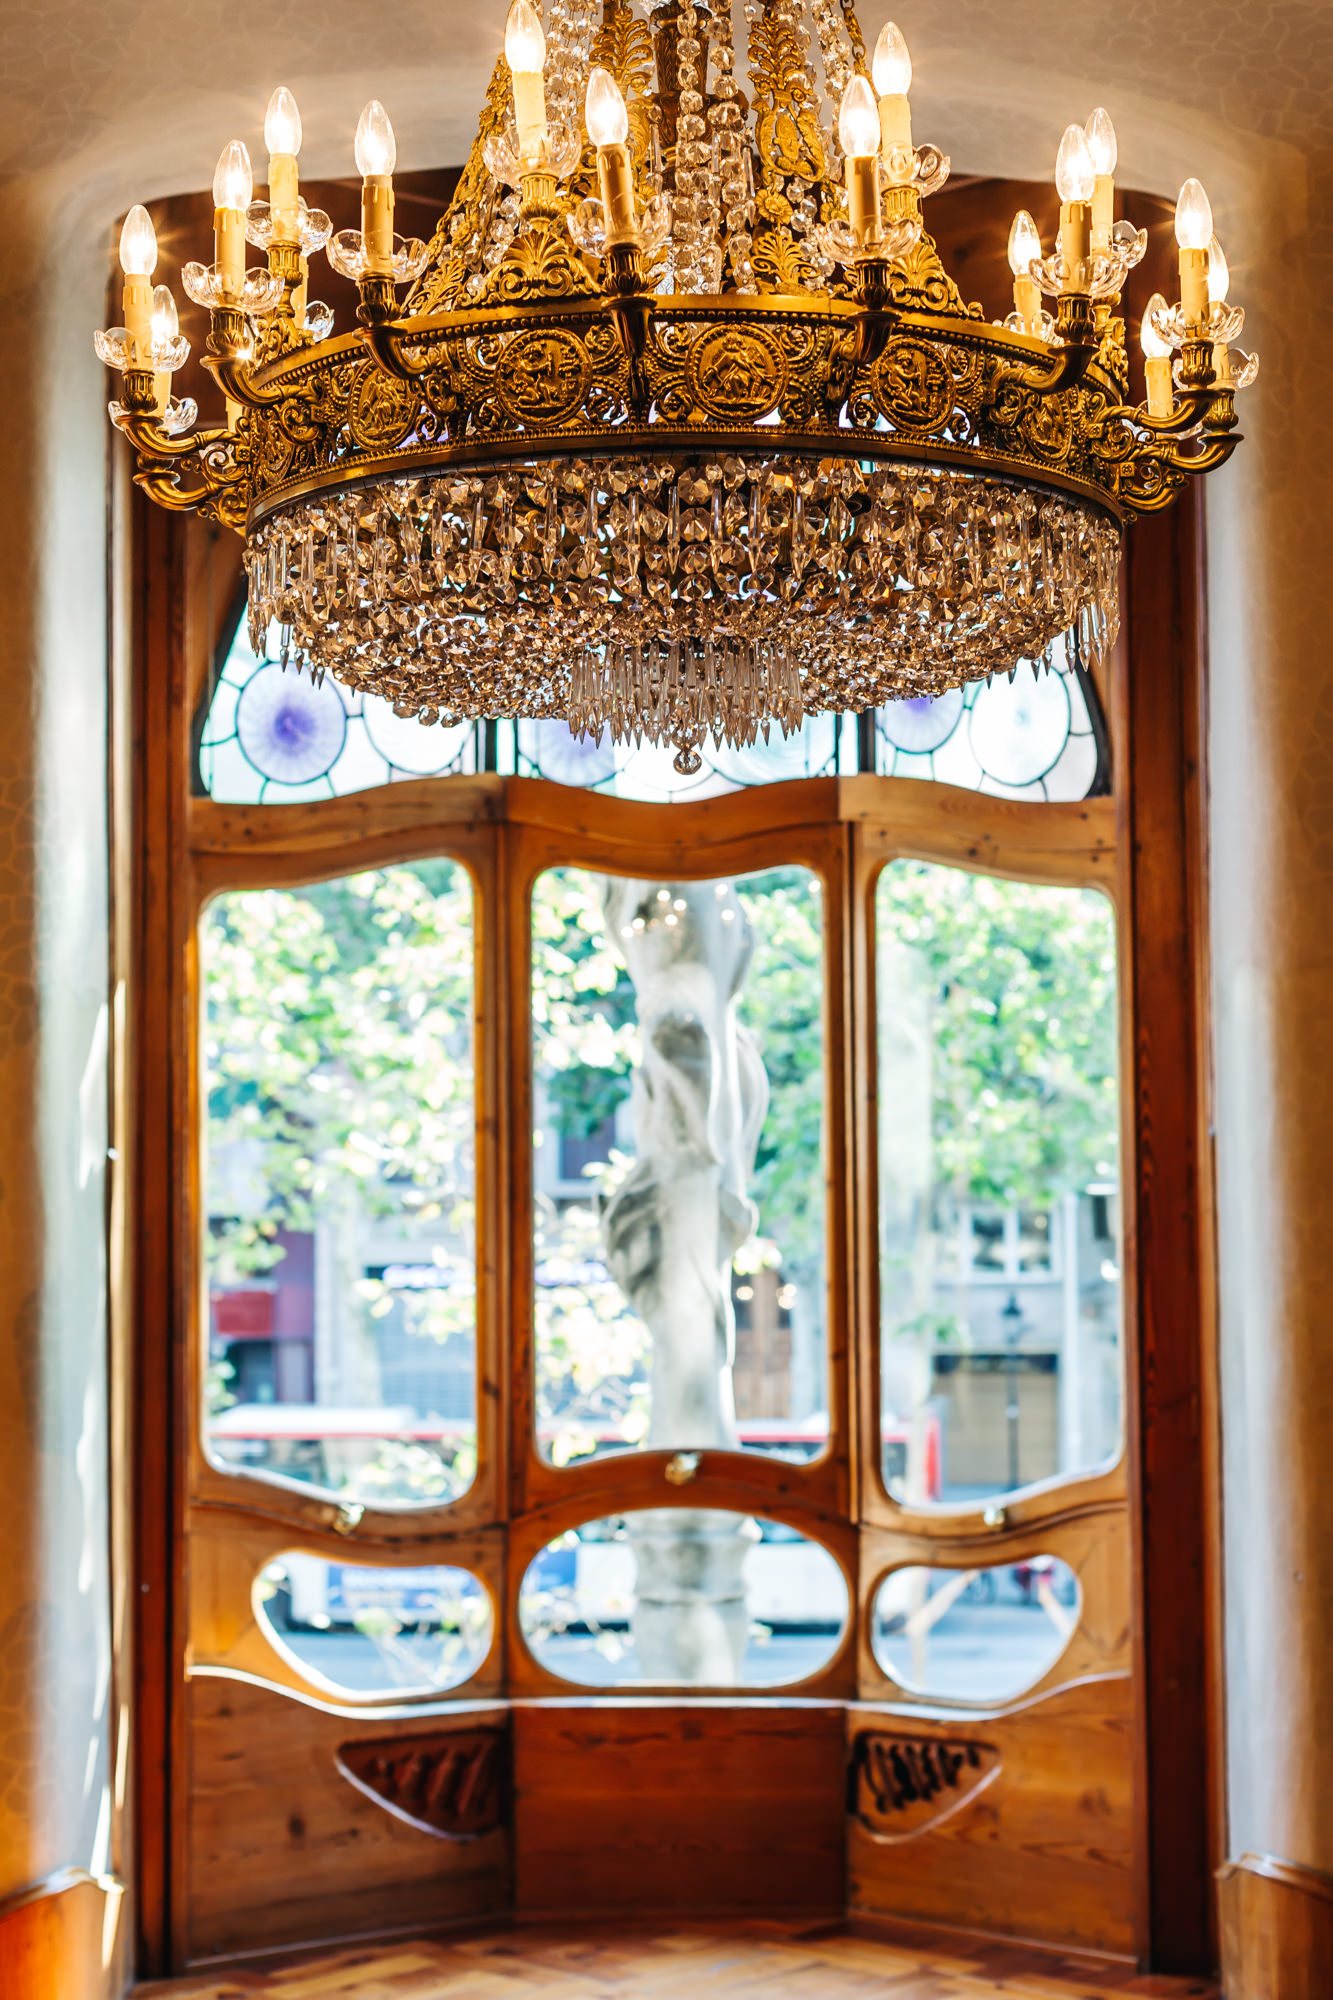 The living room looks out to Paseo de Gracia